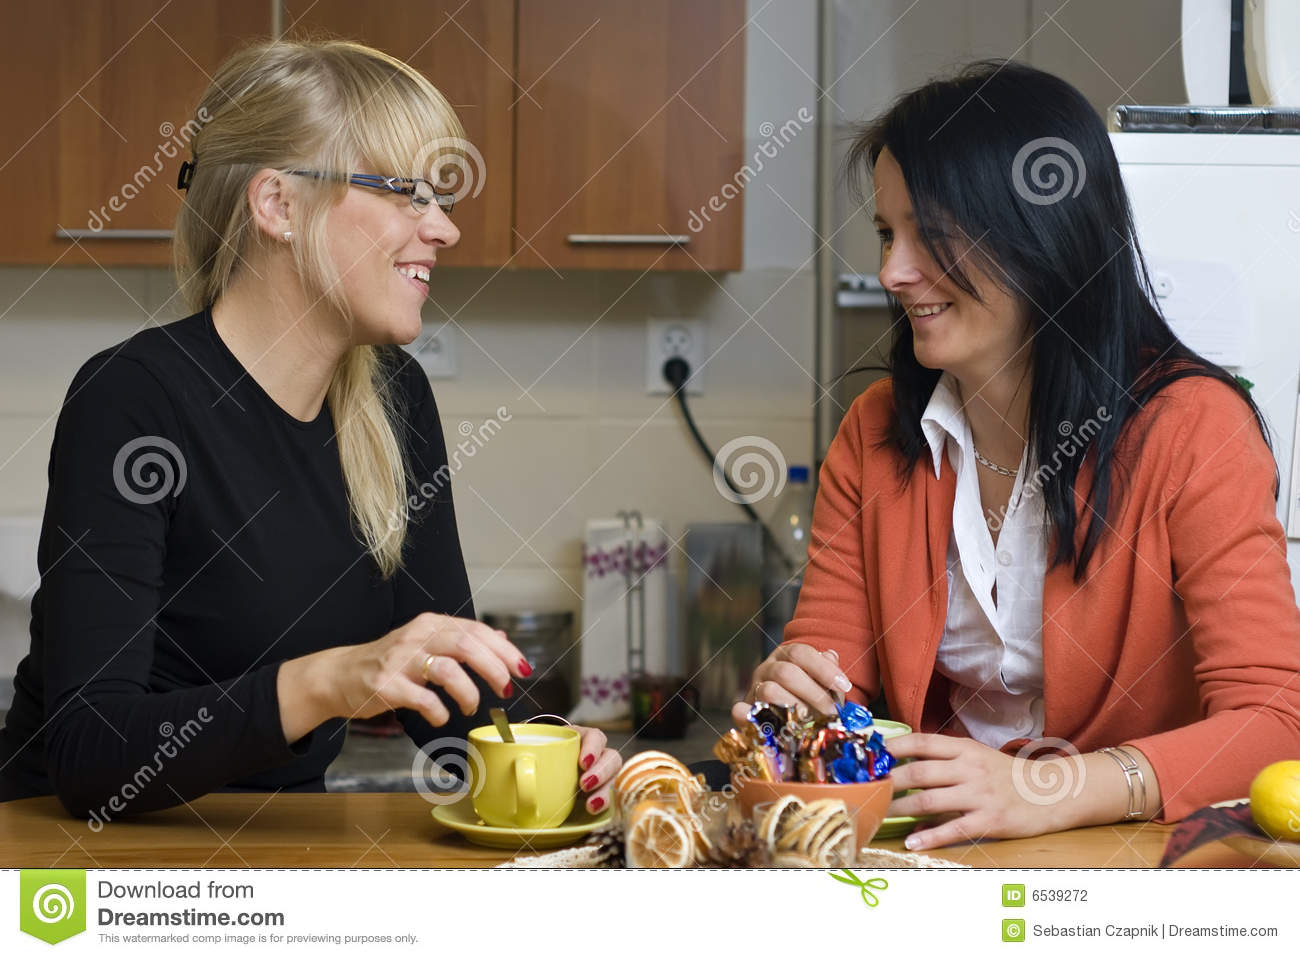 Women drinking coffee at home